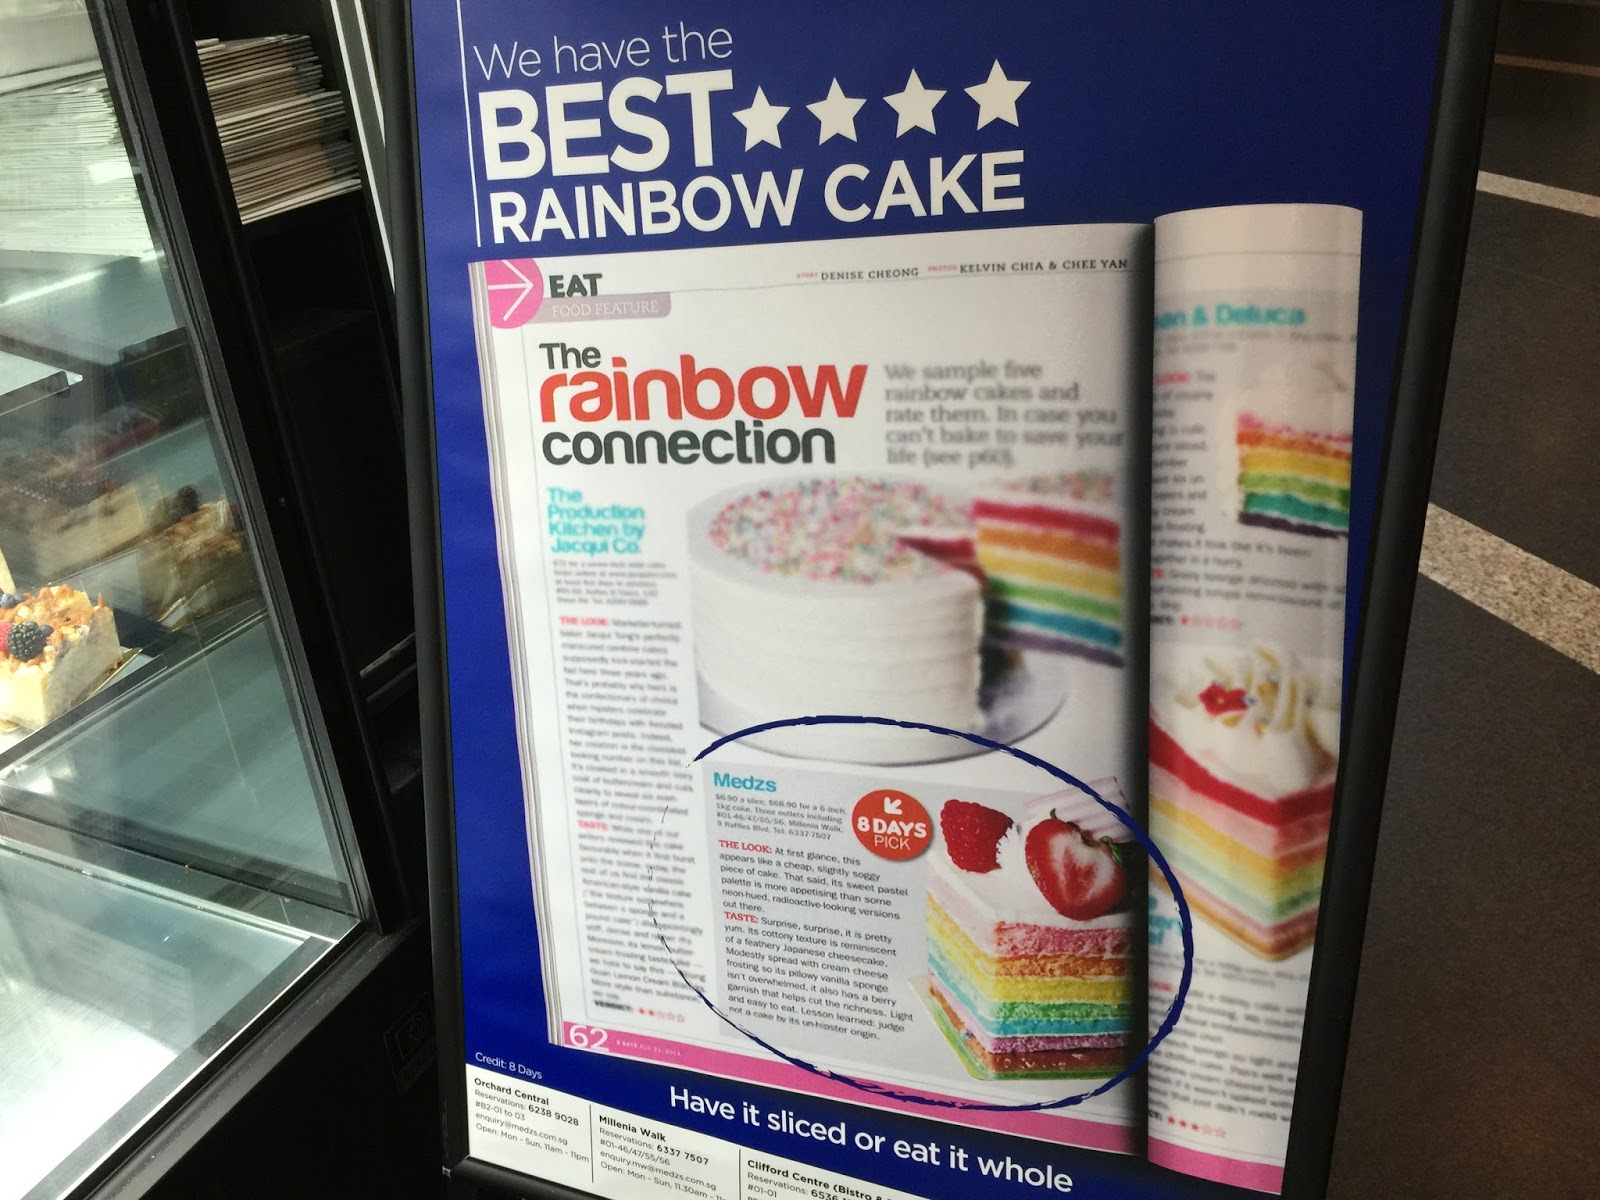 8 Days - MEDZS Bistro and Bar Rainbow Cake